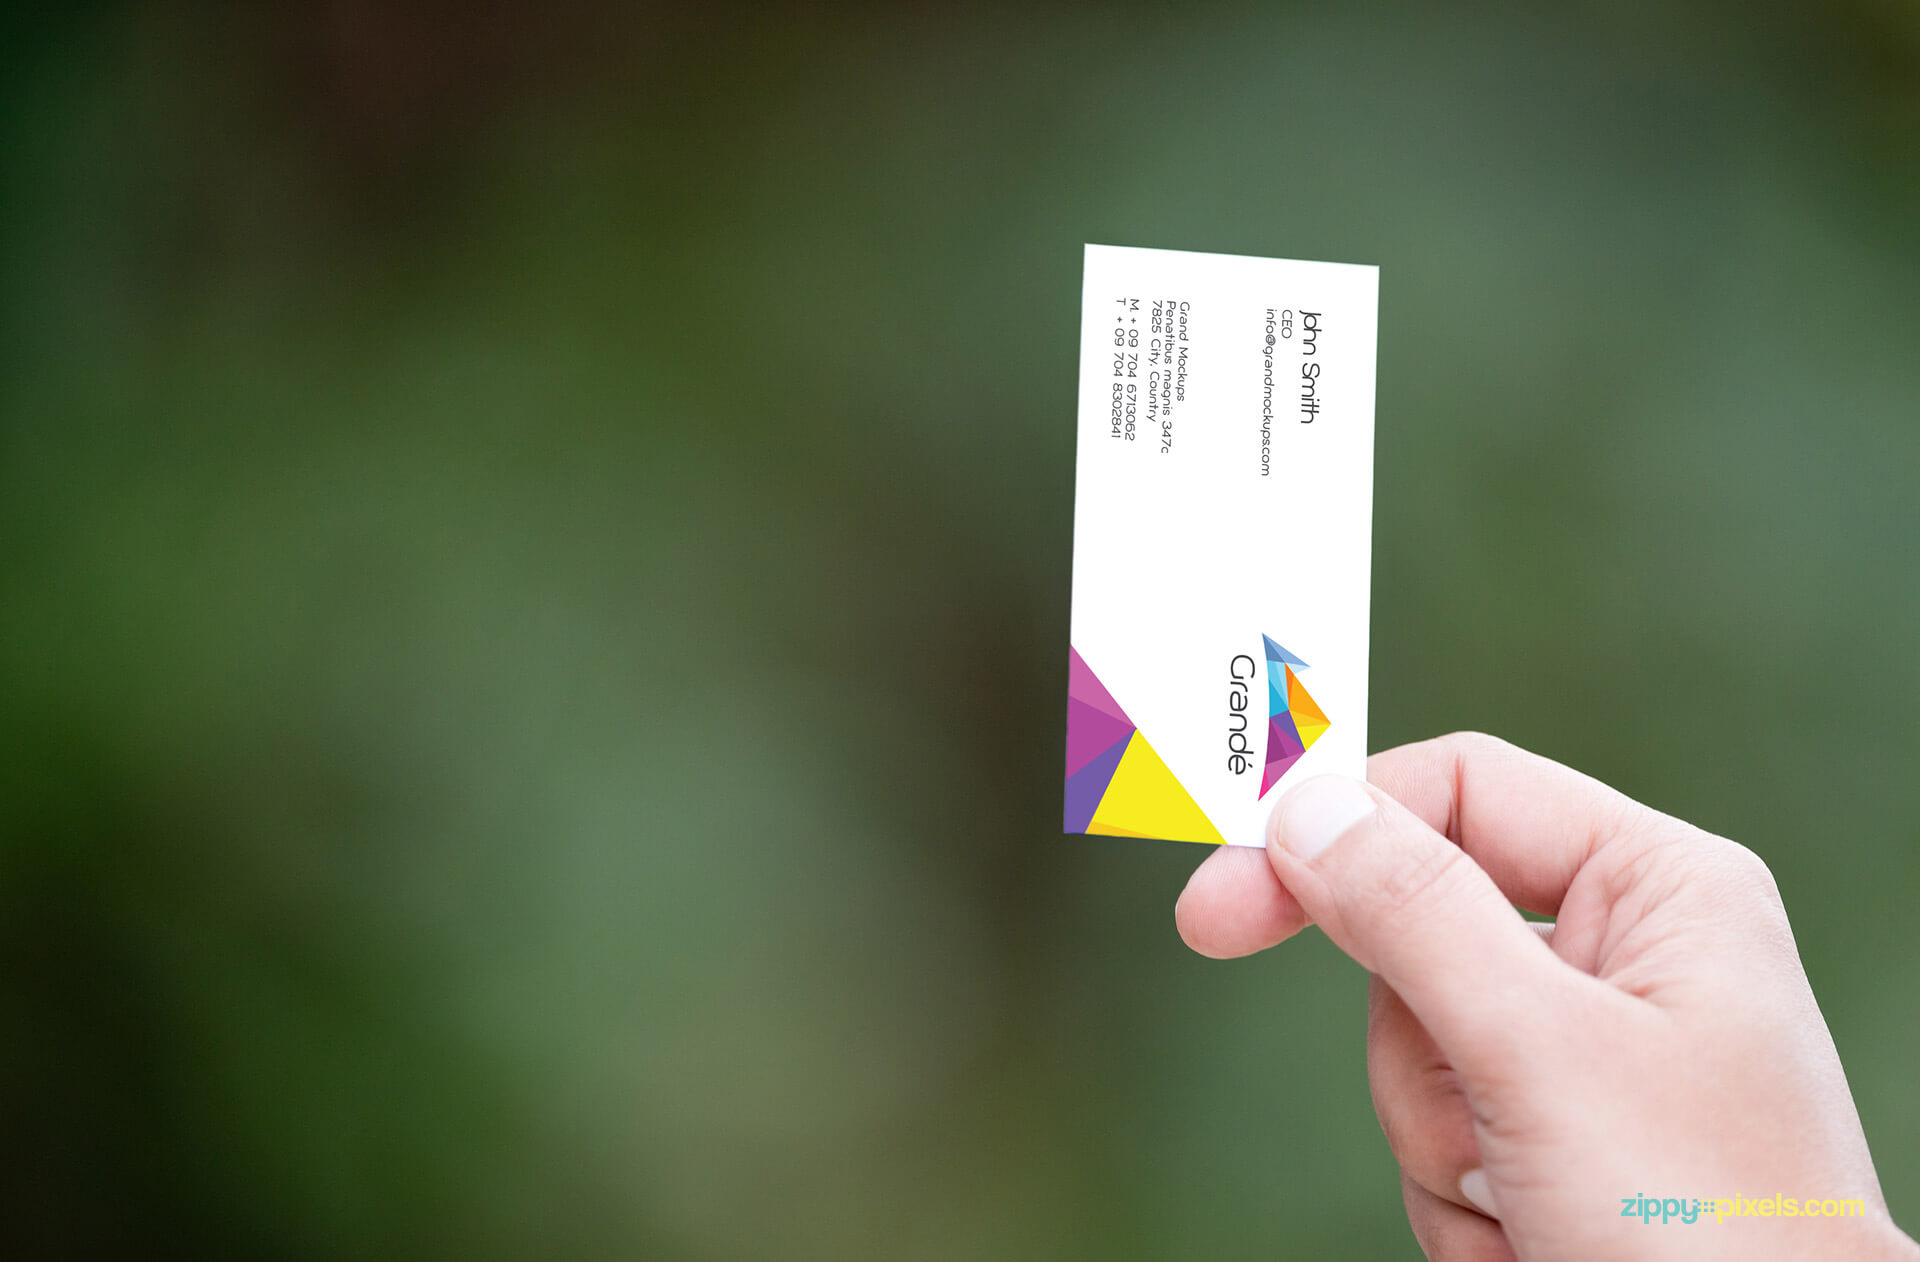 Branding Mockup of a Business Card in Hand